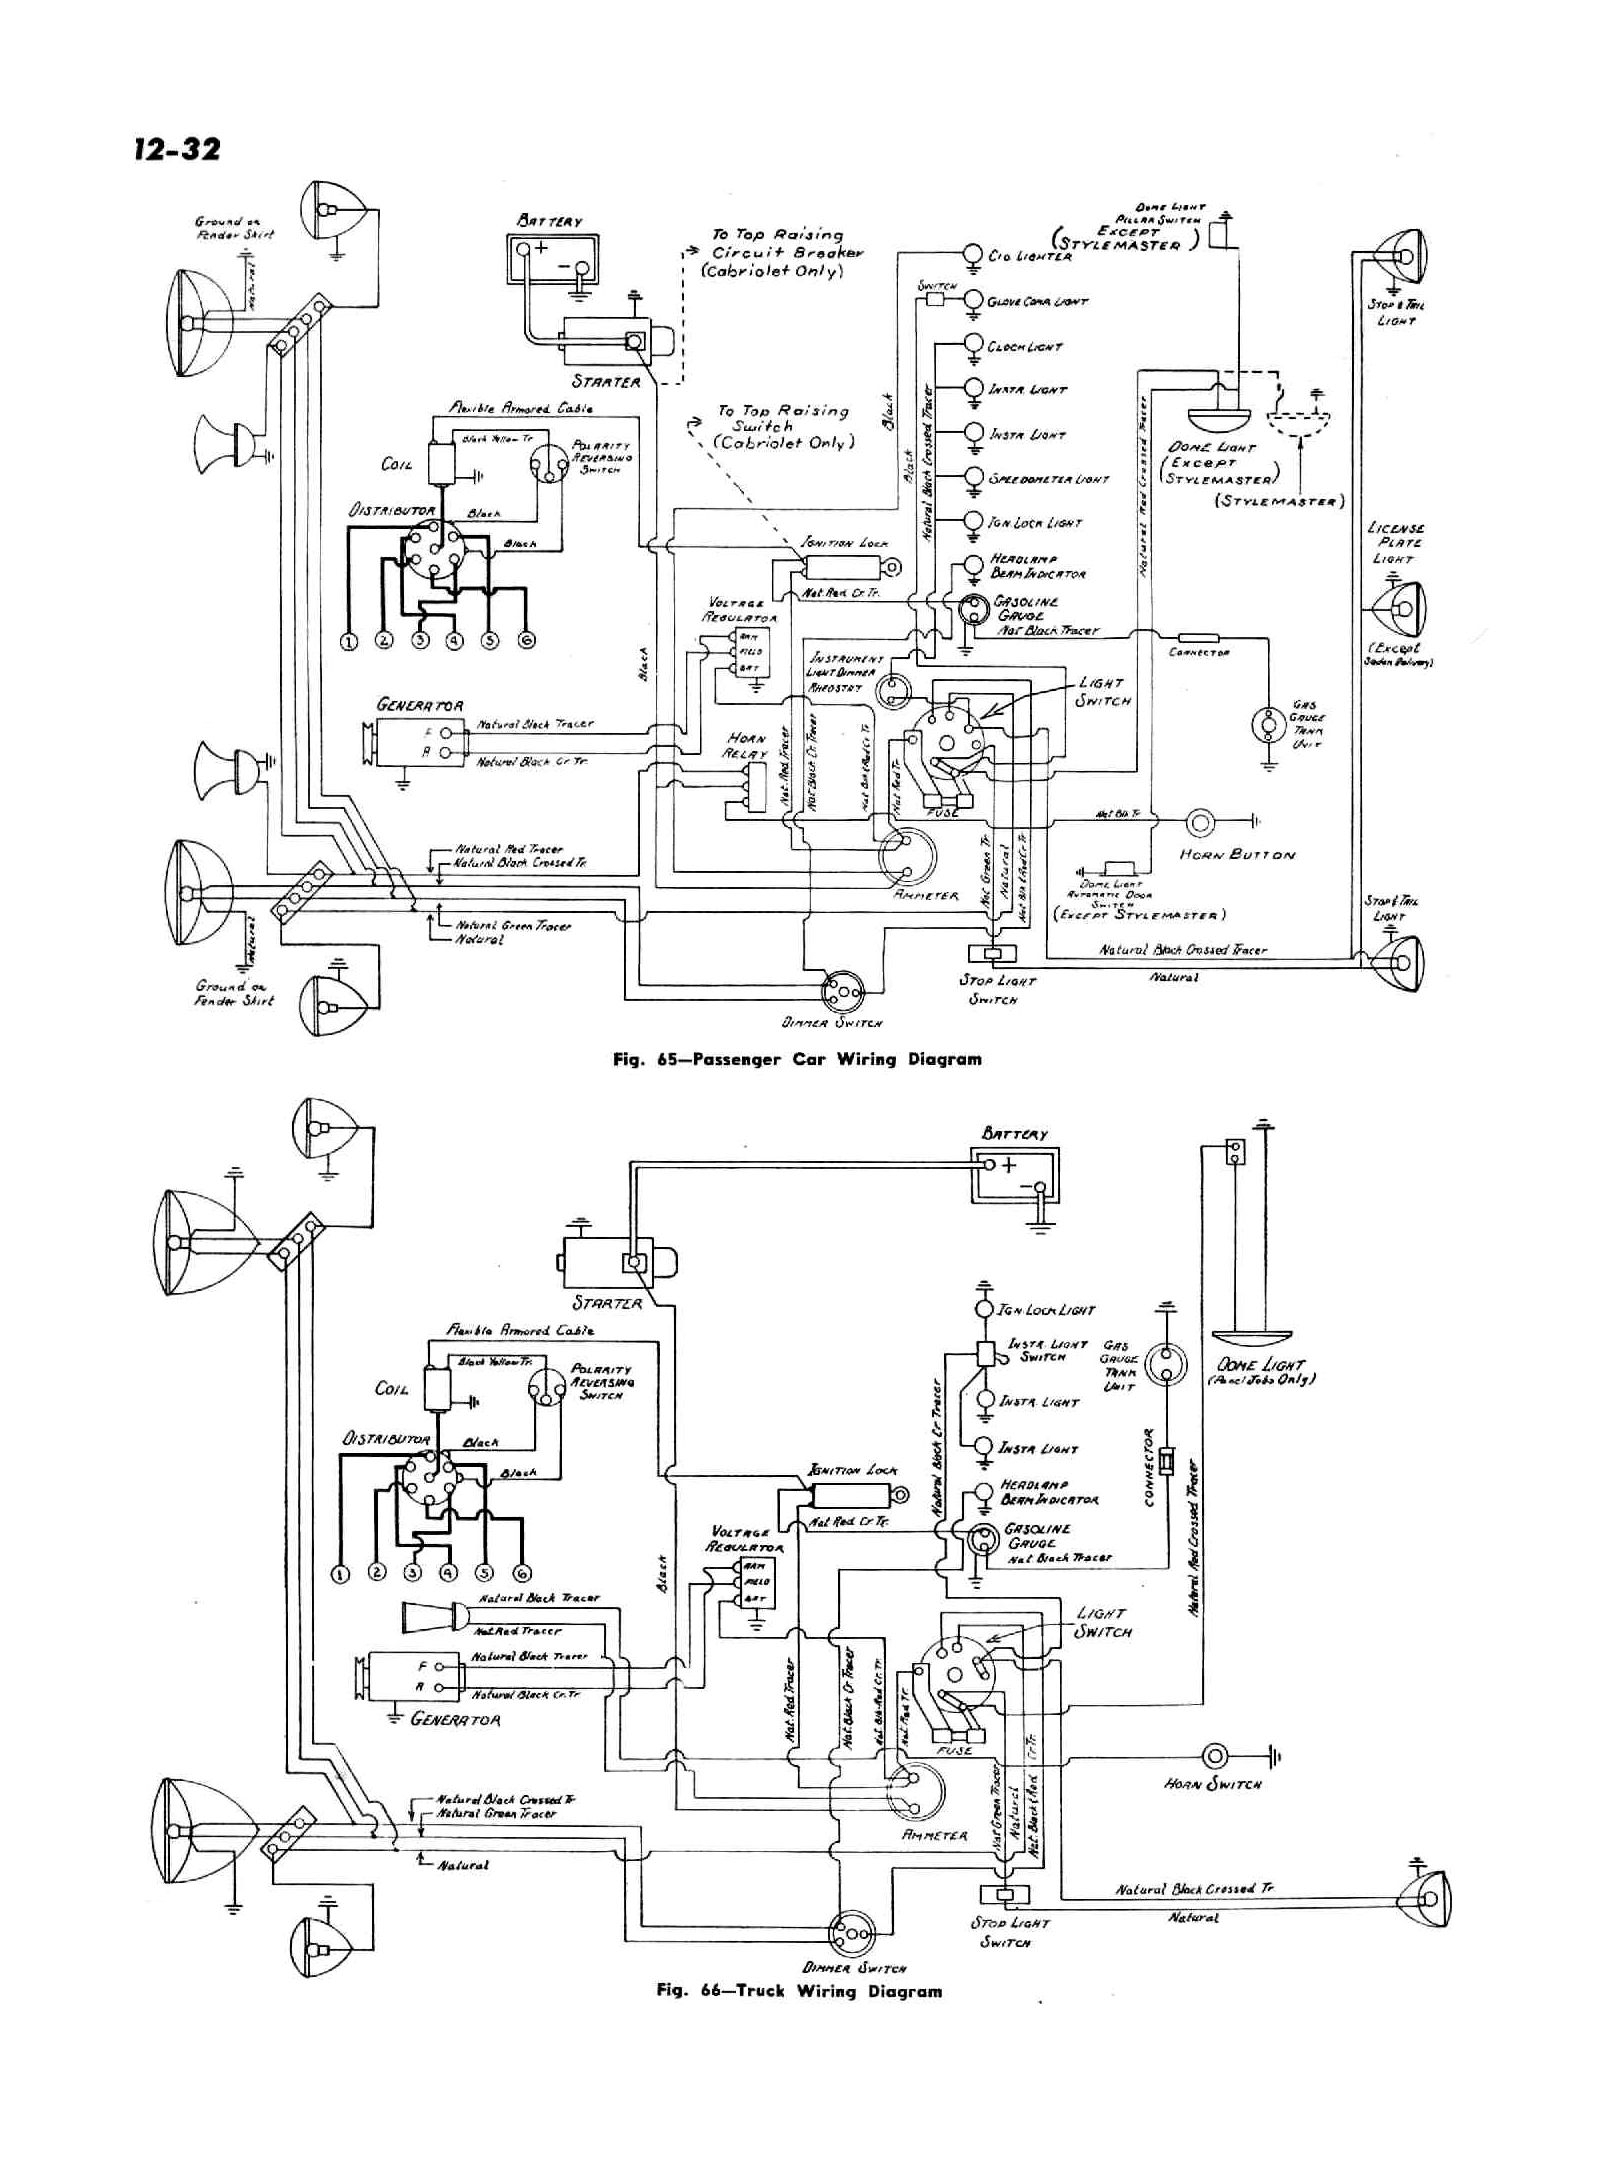 chevy wiring diagrams with 6 volt generator wiring diagram?resize\=665%2C899\&ssl\=1 1941 farmall a wiring harness 6 volt diagram wiring diagram 66 Plymouth at bayanpartner.co